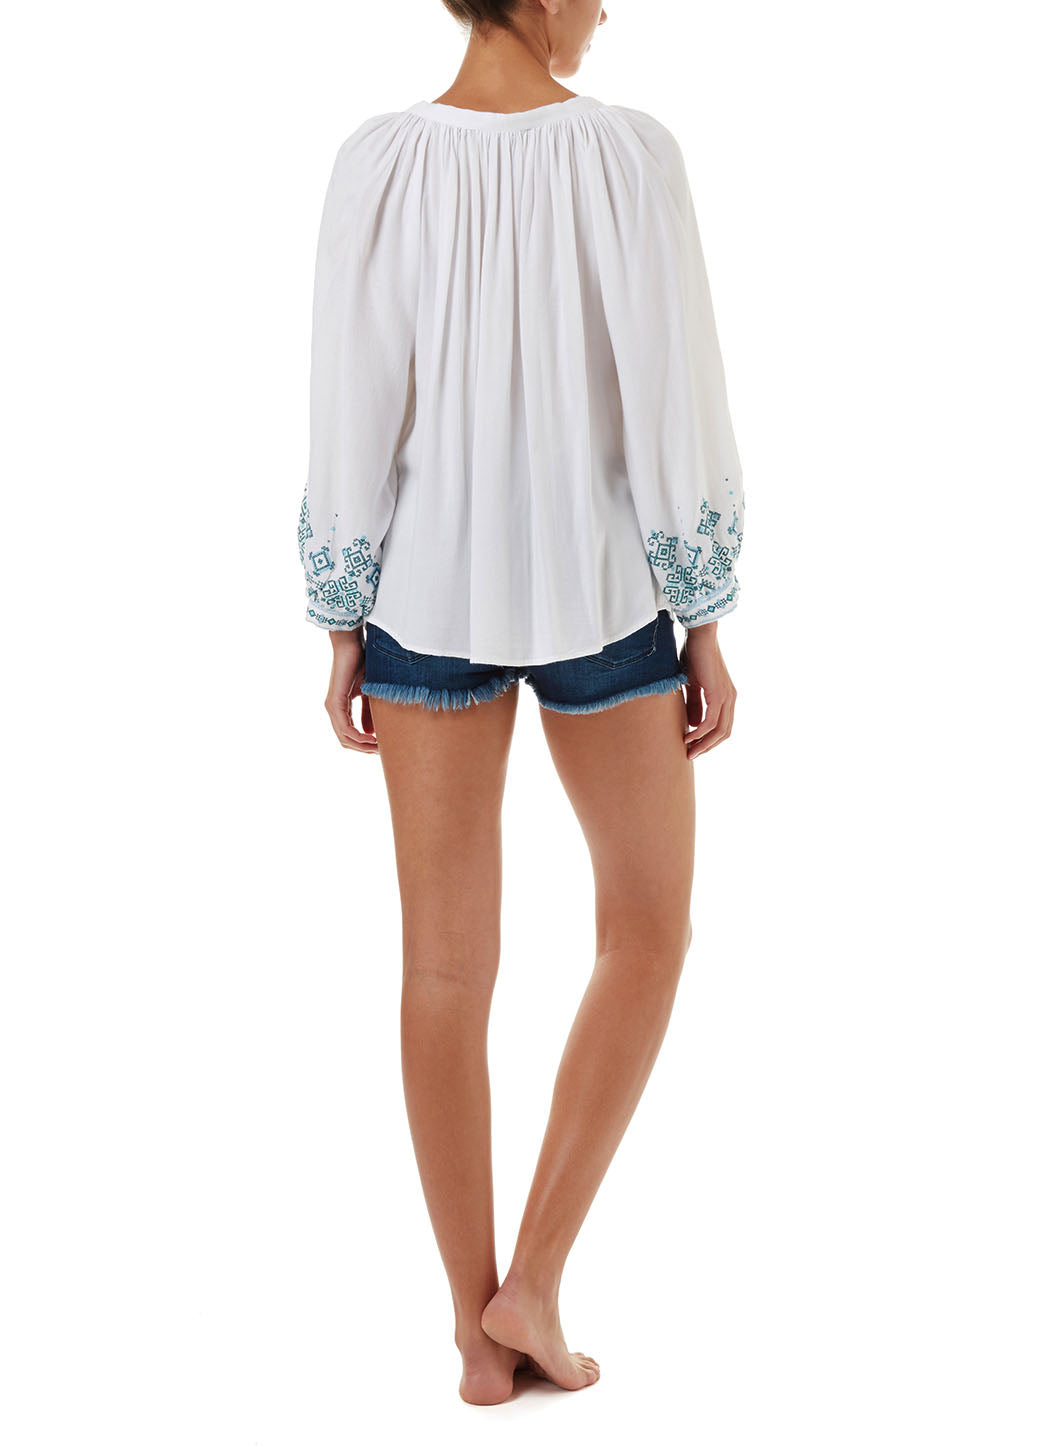 Shiv White/Mint Lace-up Embroidered Blouse